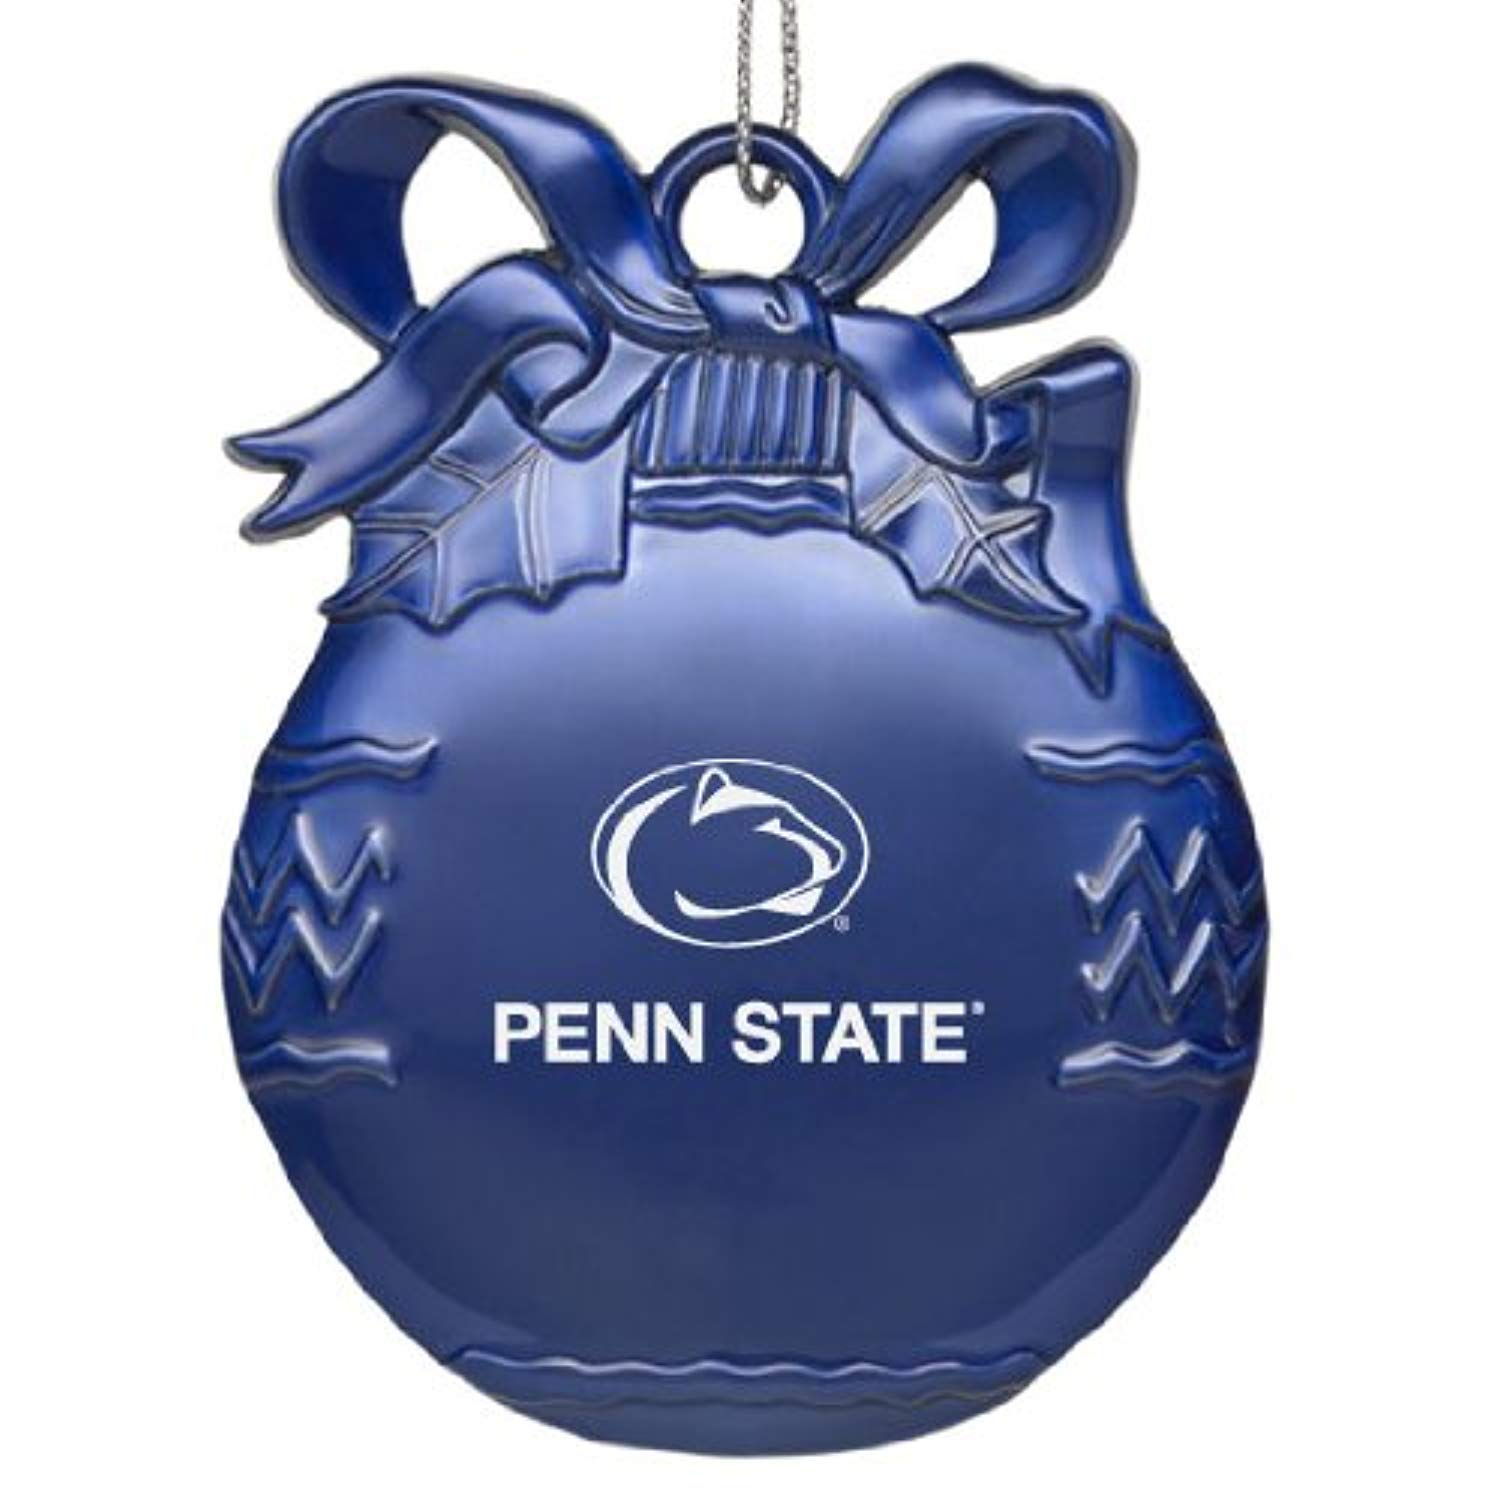 Penn State University Blue Pewter Christmas Tree Ornament